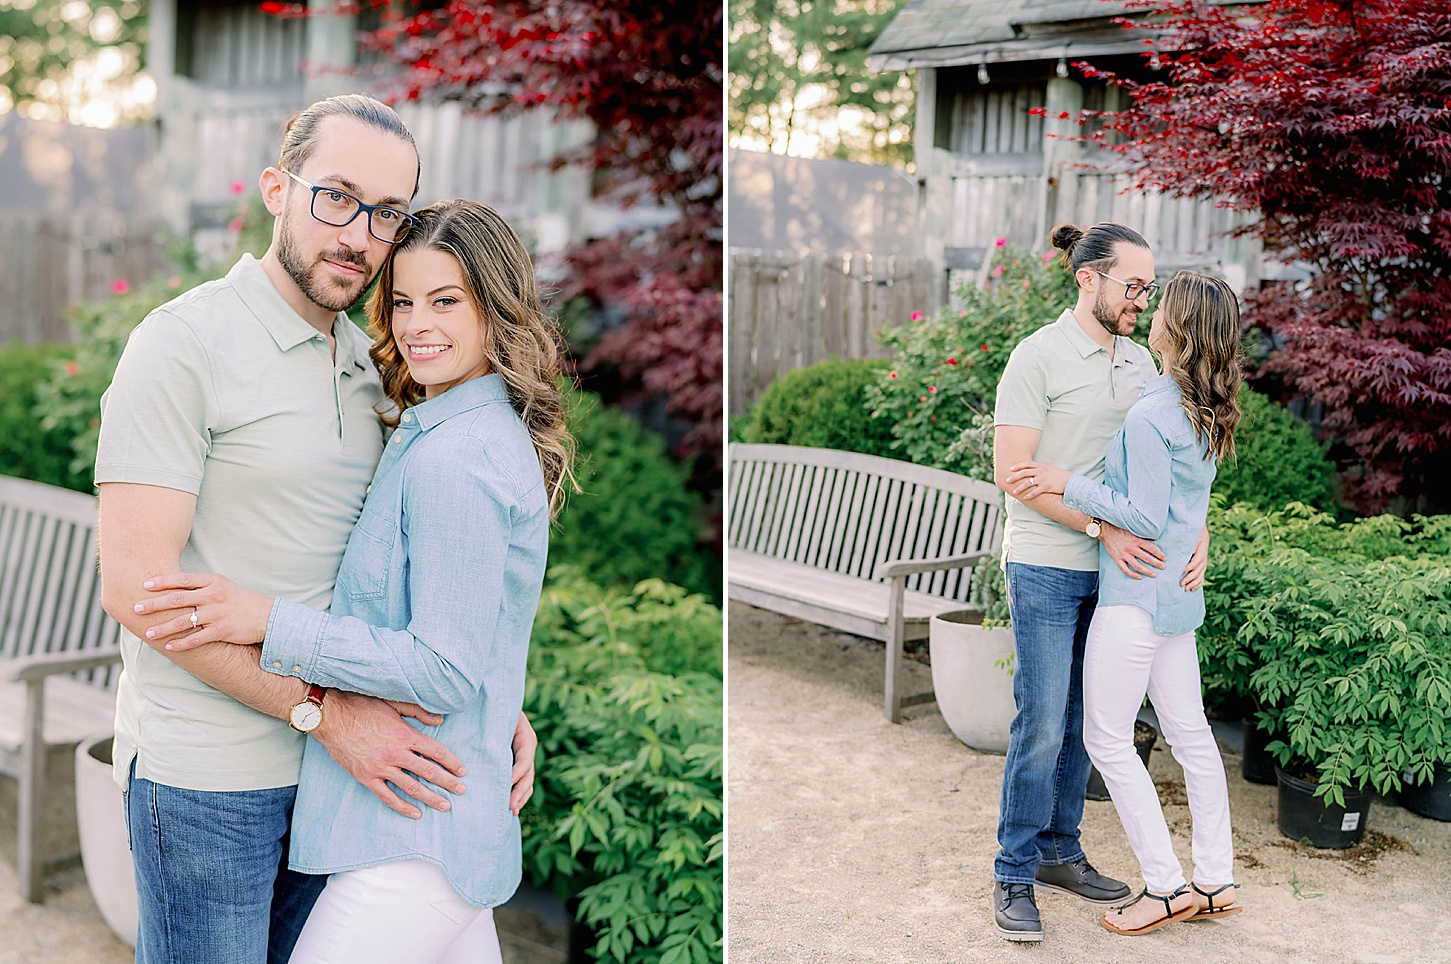 Bast Brothers Garden Center Mullica Hill NJ Engagement Photography by Magdalena Studios 0019